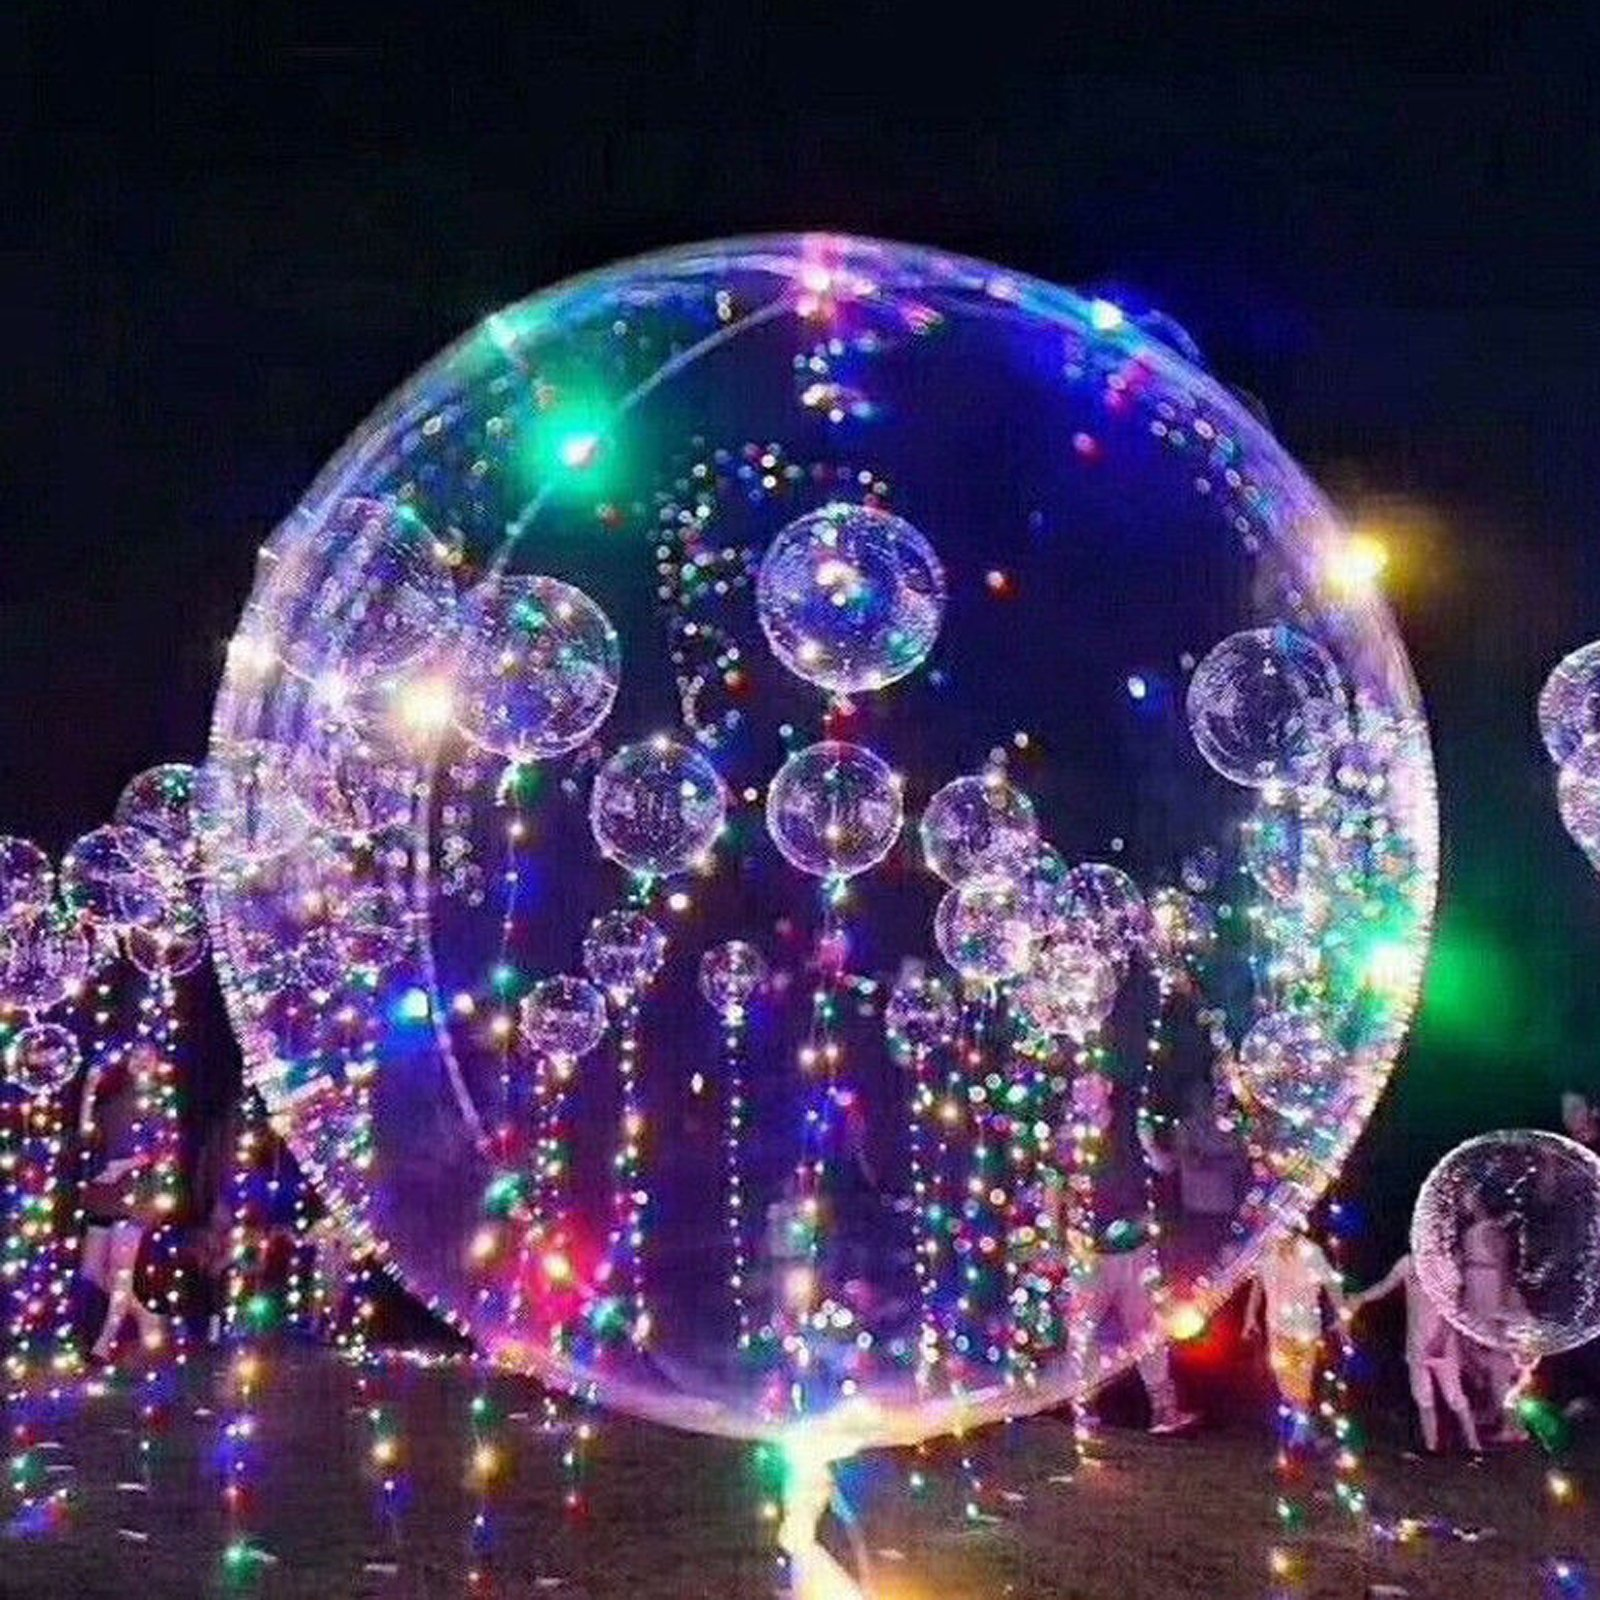 LED Light Up Balloons, Luminous Transparent Fillable Colorful Floating Balloon, Perfect for Birthday,Wedding, Holiday, Special Occasion and Event Decoration (100)